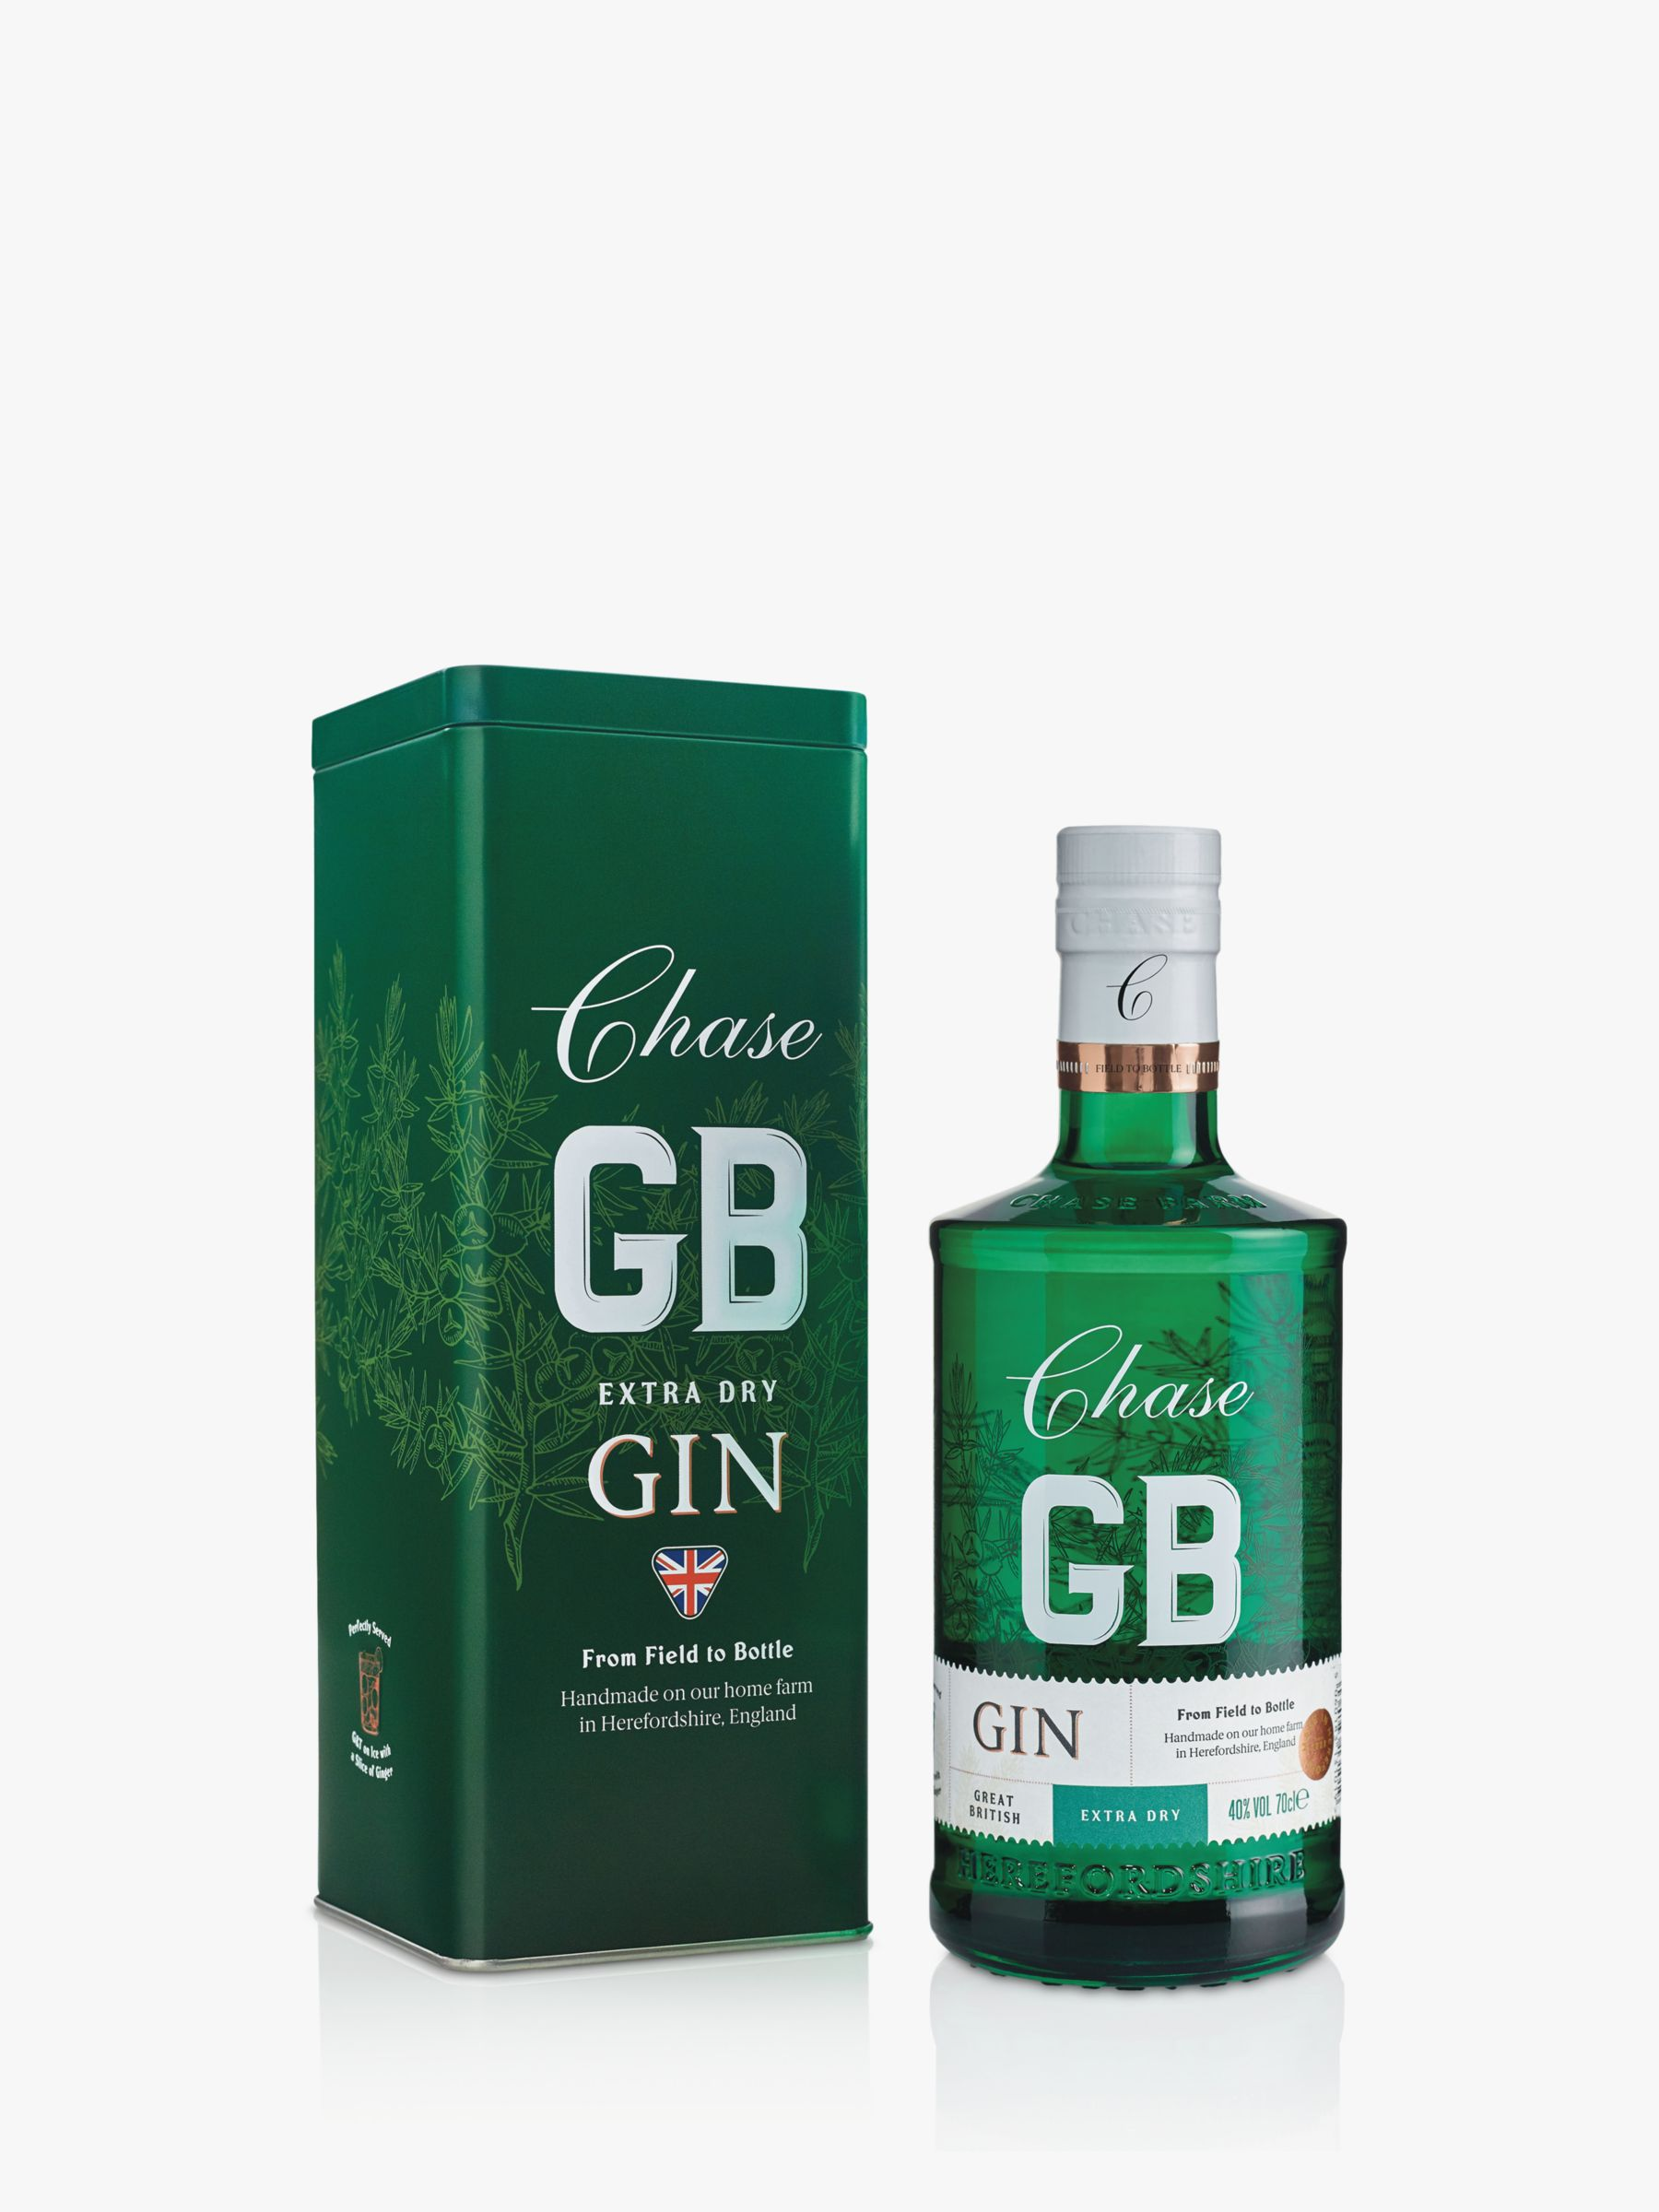 Chase Chase GB Gin in Green Tin, 70cl